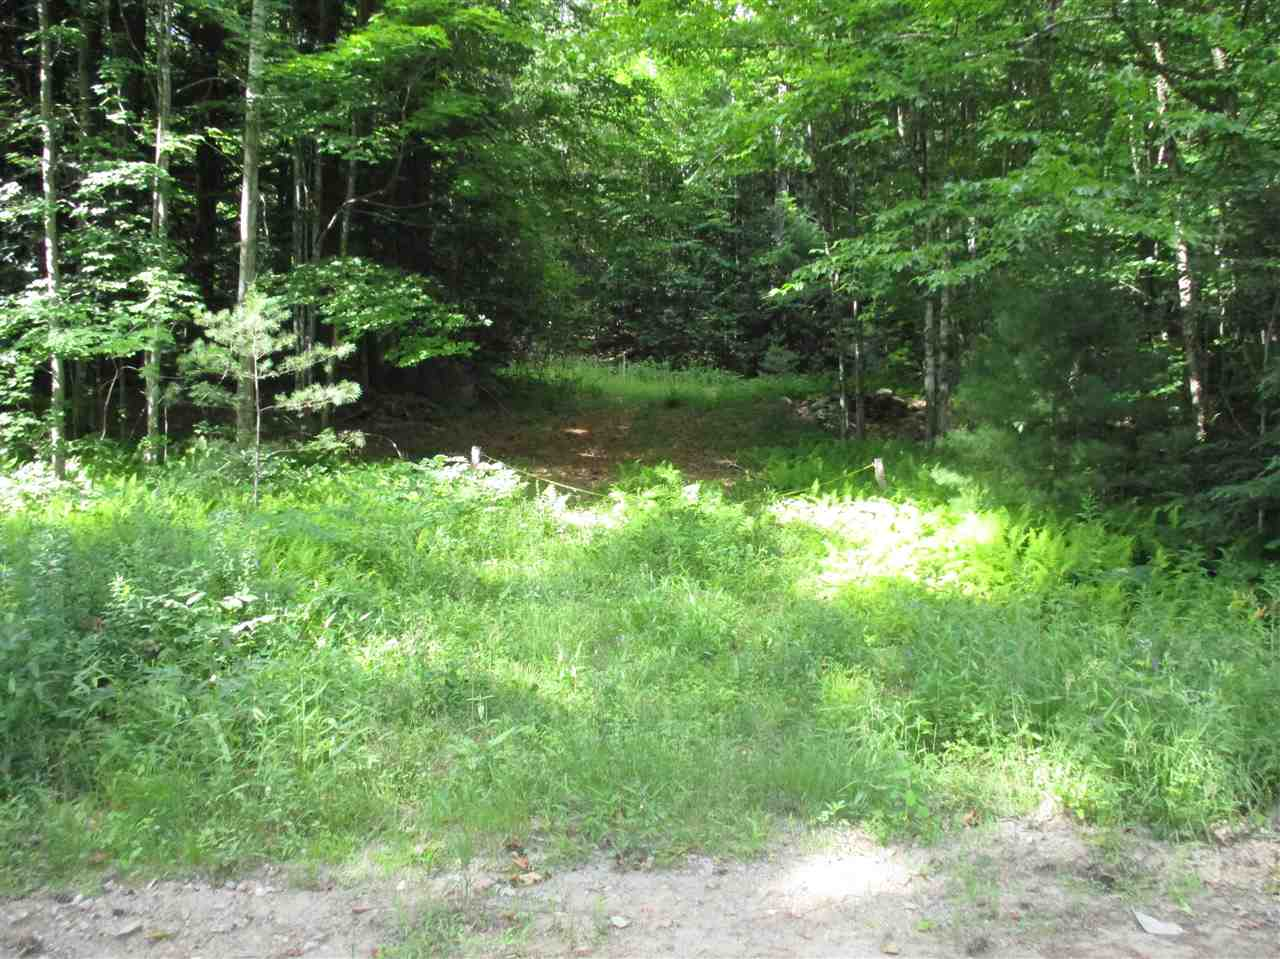 Large acreage building lot abutting Campton's Eastern Corner Road.  Driveway is already cut leading to two different homesite locations with excellent views off to the southwest.  The property has been surveyed and a septic system has been drawn up so the site is ready to build on.  The Owner's plans changed and they purchased an existing house so this property has become surplus to their needs.  Owner may be willing to take back paper for a credit worthy purchaser.  It is worth a look-see.  Broker is also a general contractor and can help you with building plans and construction.  Call for a personal showing and bring along your building plans.